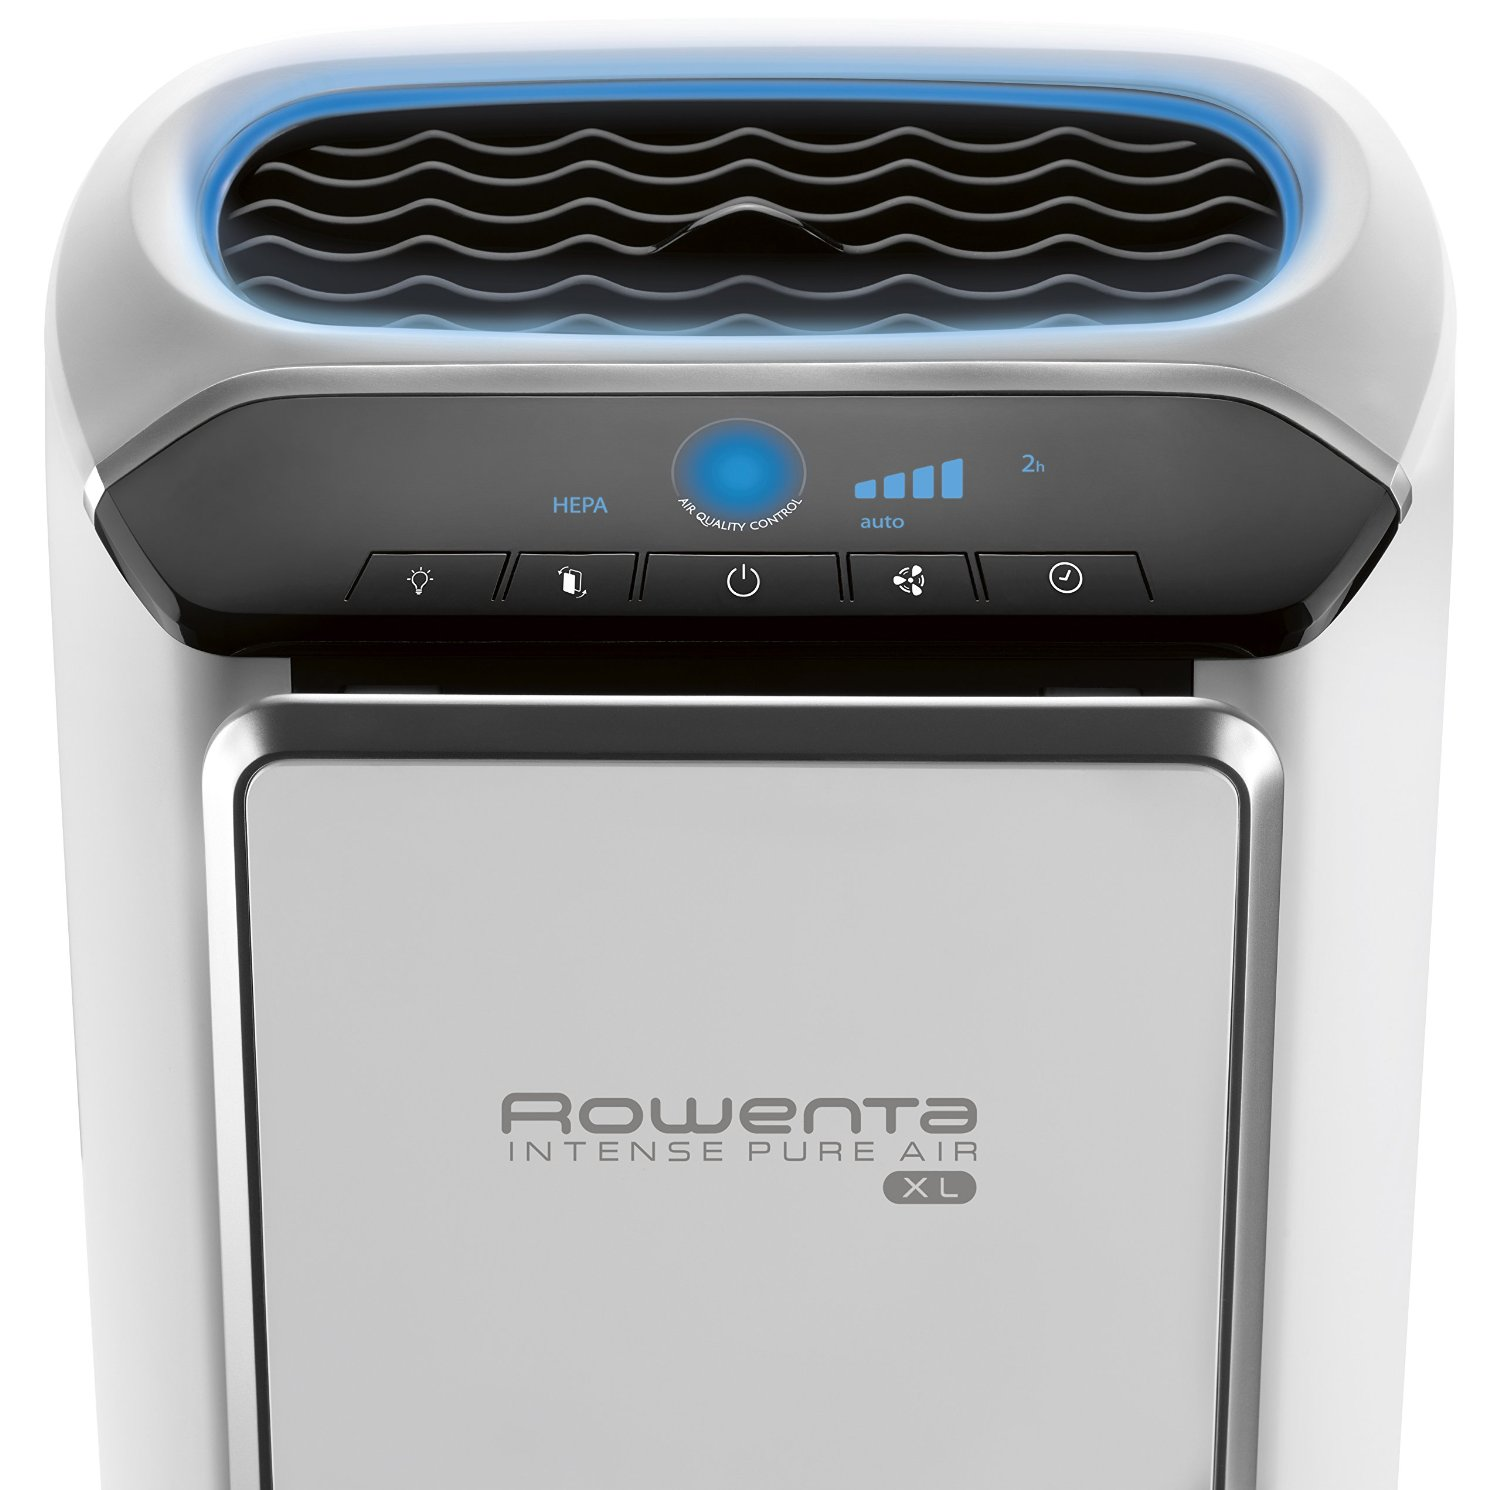 Rowenta 6020 Rowenta Pu6020 Review And Specs Best Air Purifier For Smoke